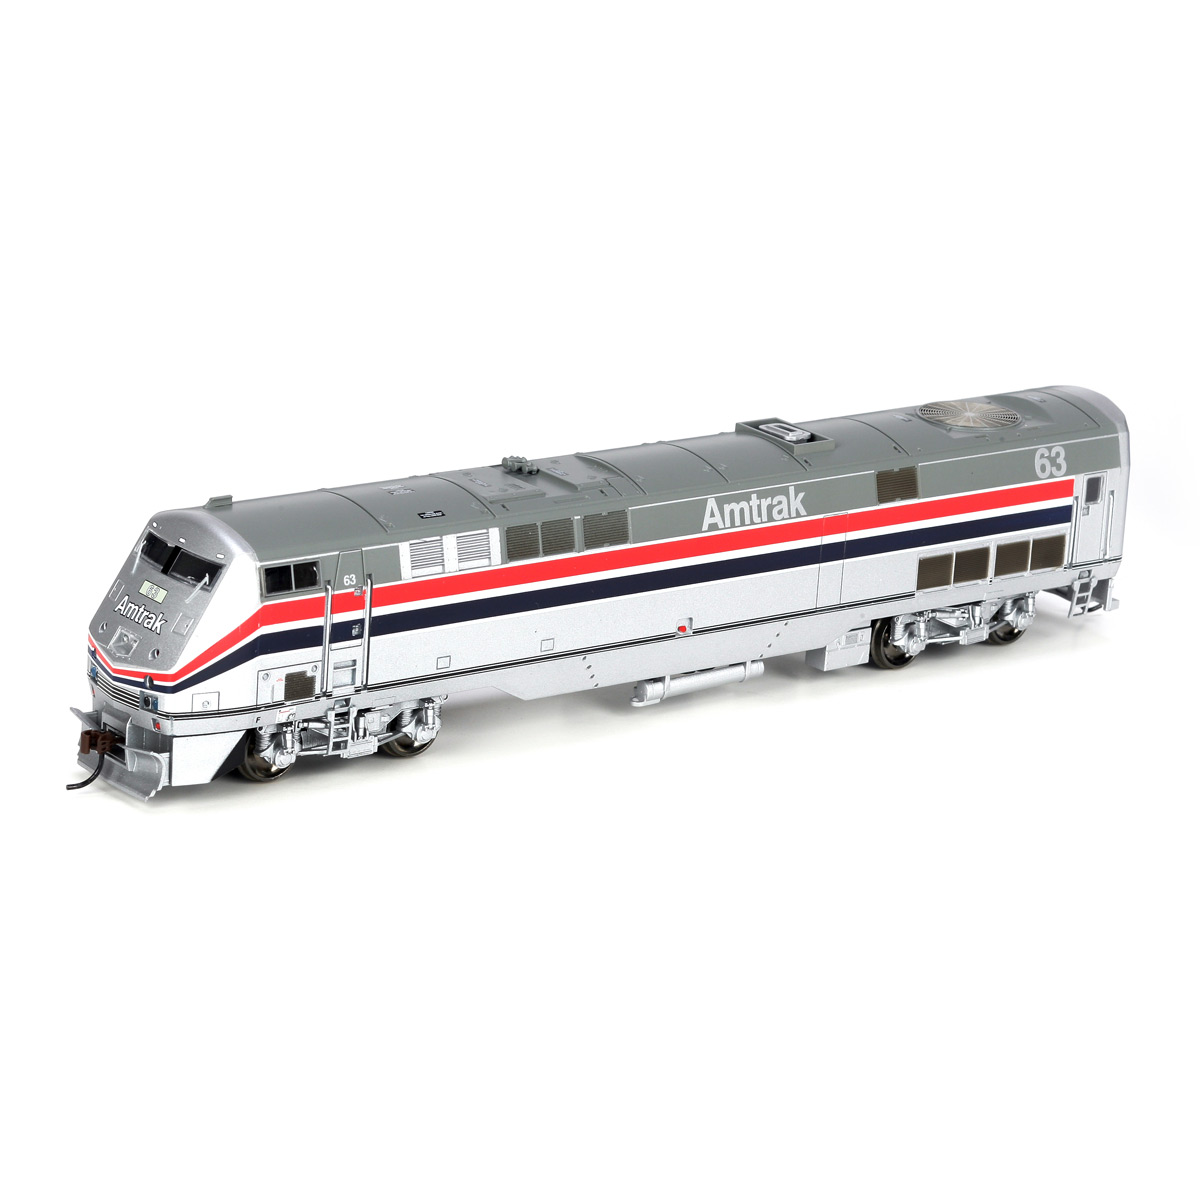 Ho Rtr Amd103 P42 Amtrak 63 Ath88713 Athearn Trains